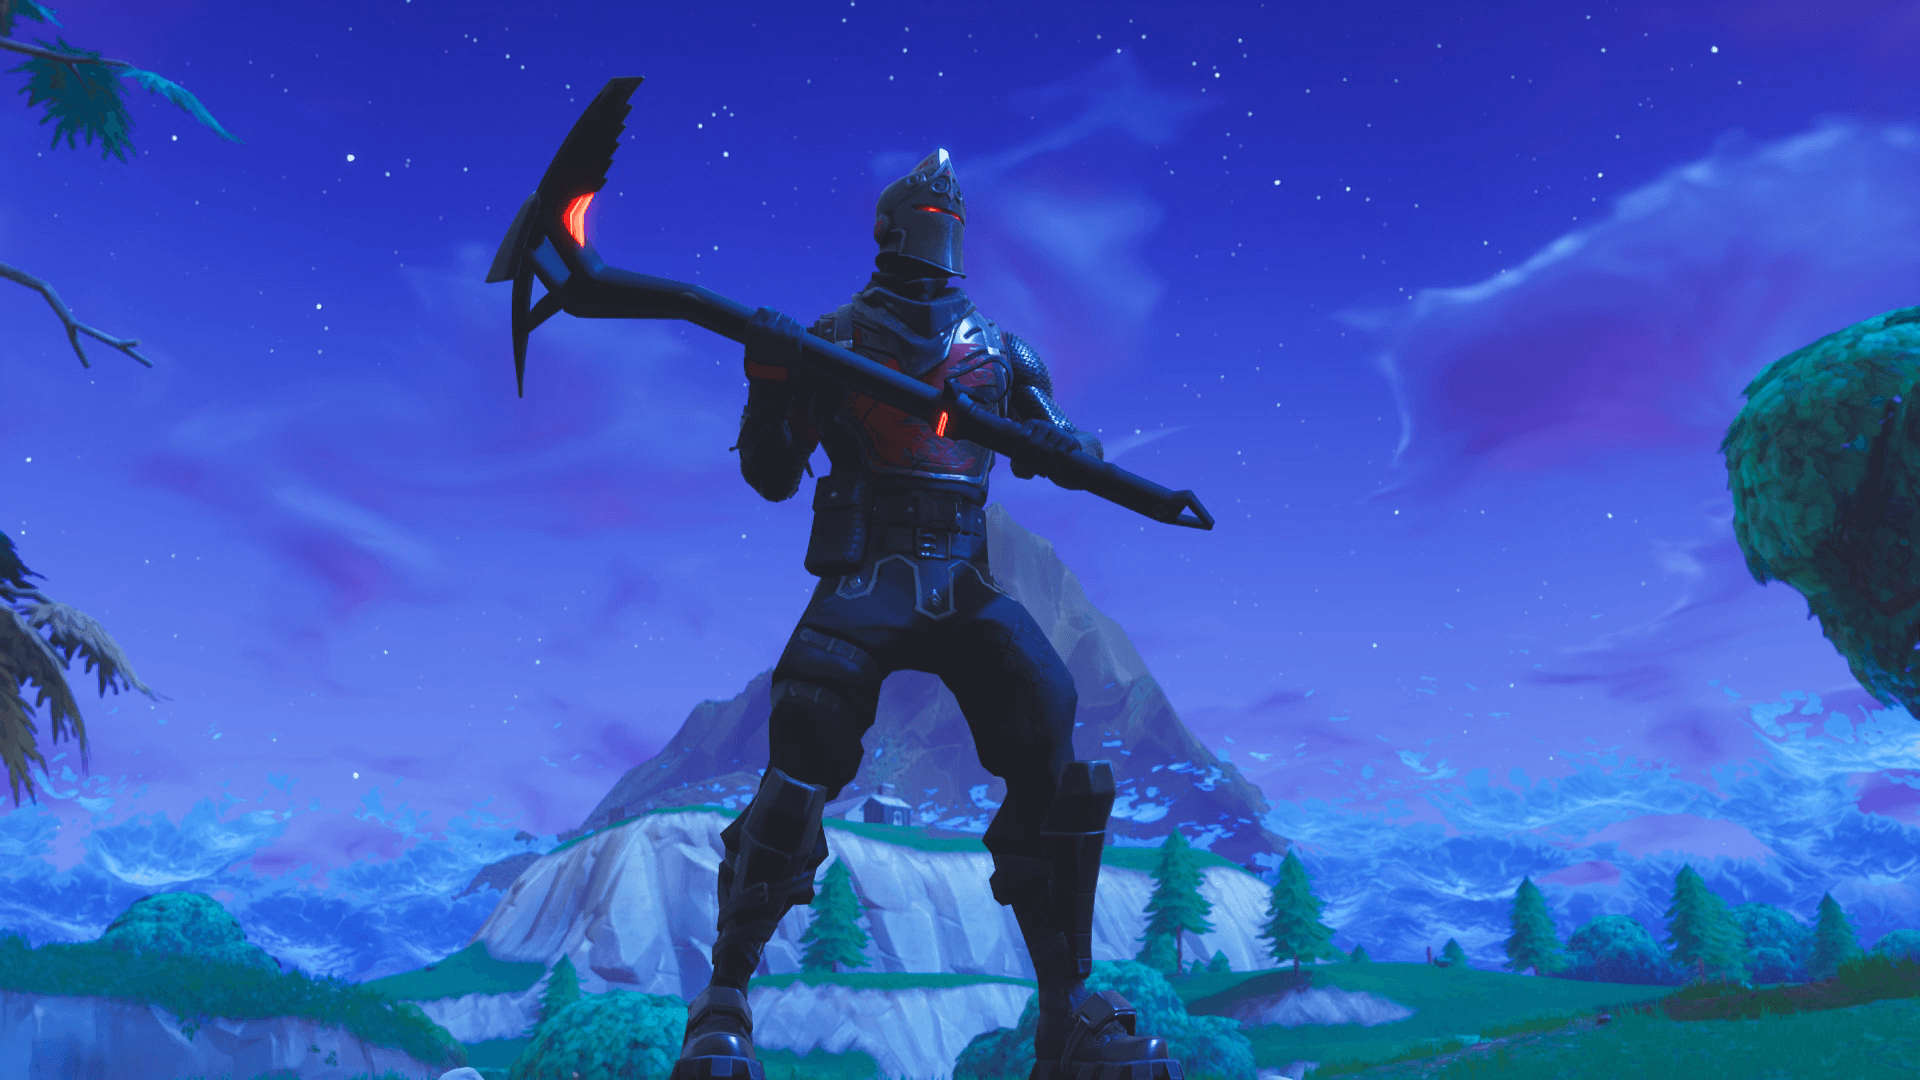 PSA: Black Knight w/ Spectre Axe looks sick AF : FortNiteBR